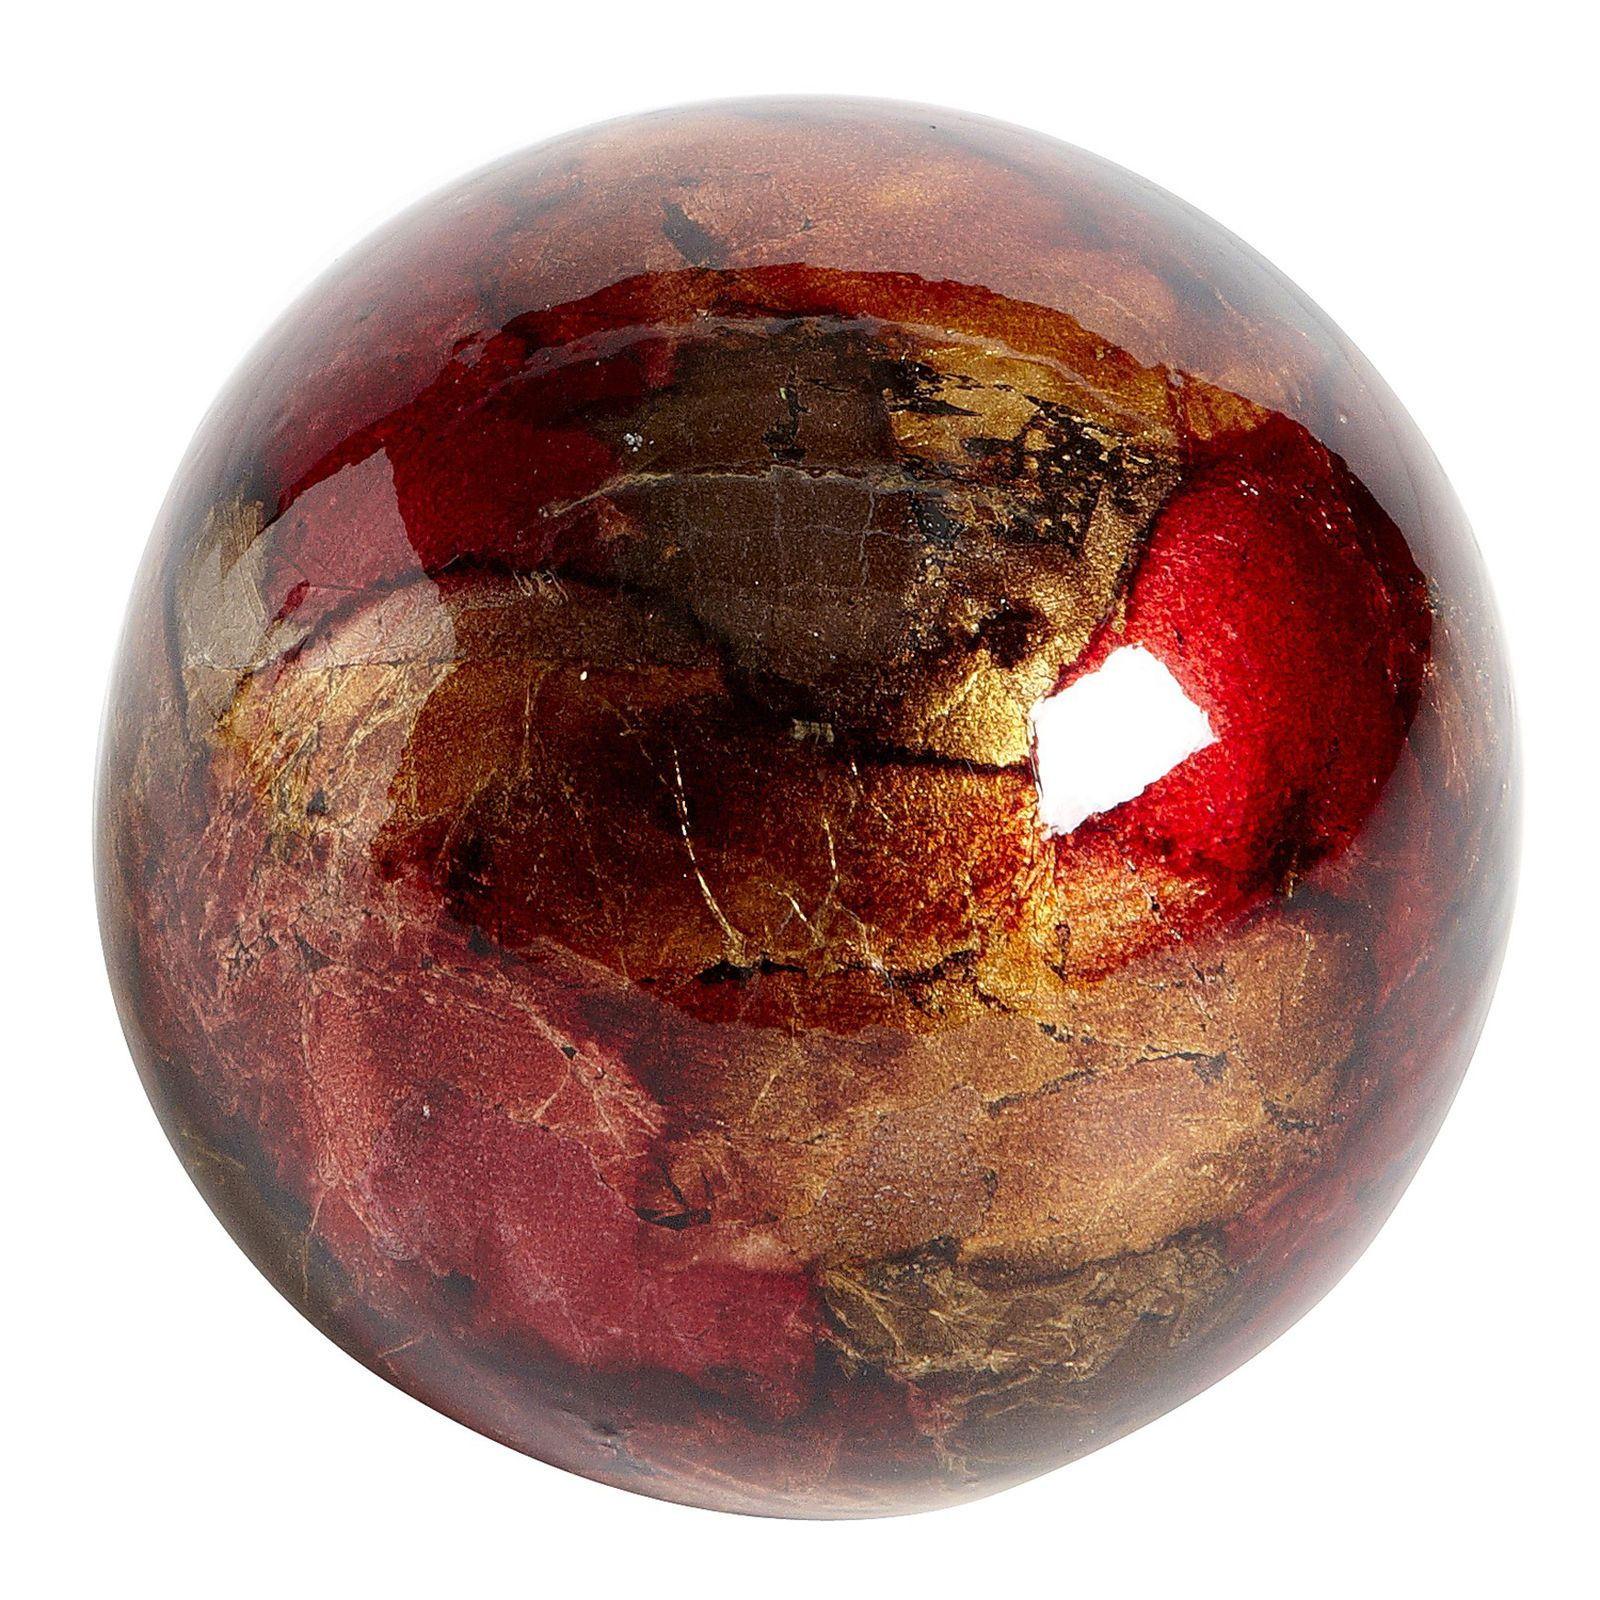 Red Decorative Balls Red & Gold Foil Decorative Sphere  Bowls Living Rooms And Room